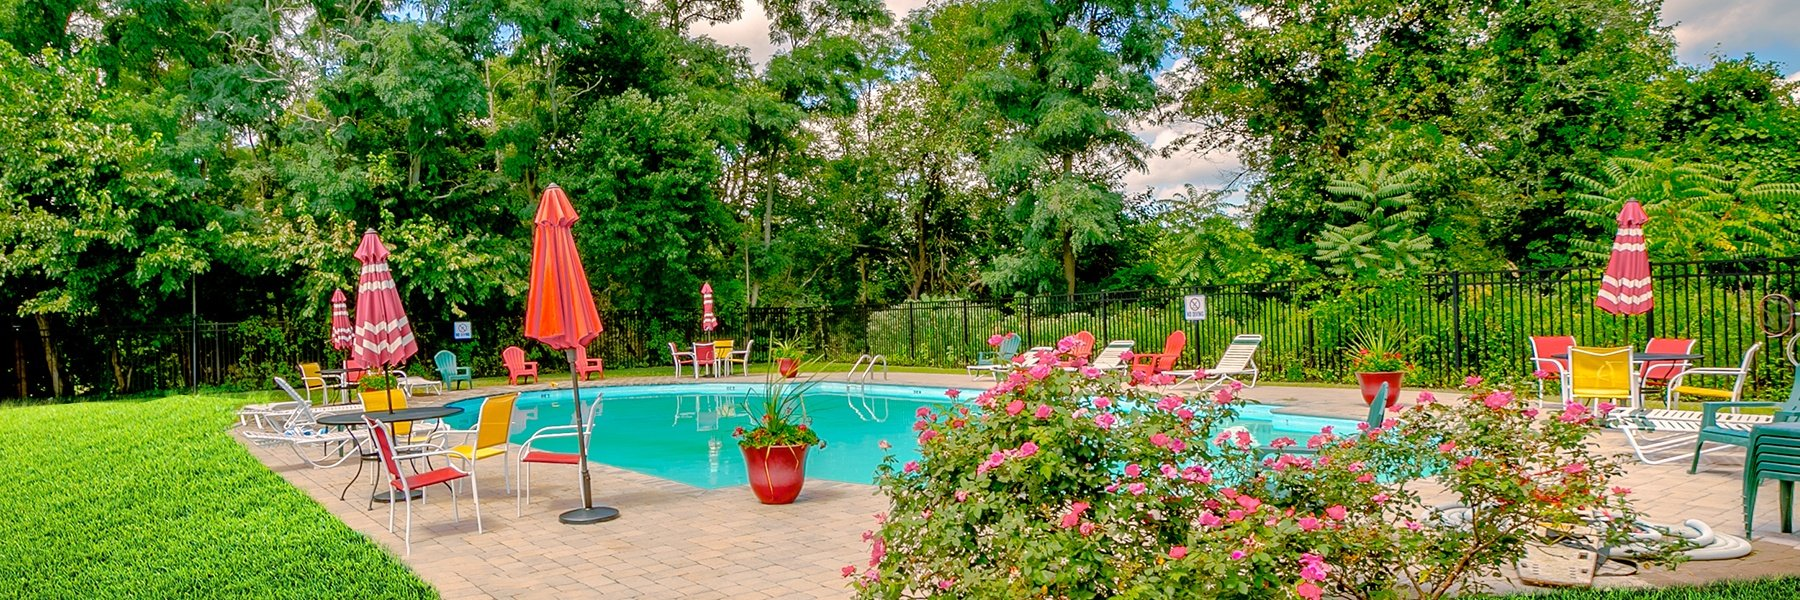 Brick Garden Apartments For Rent in Brick, NJ Swimming Pool